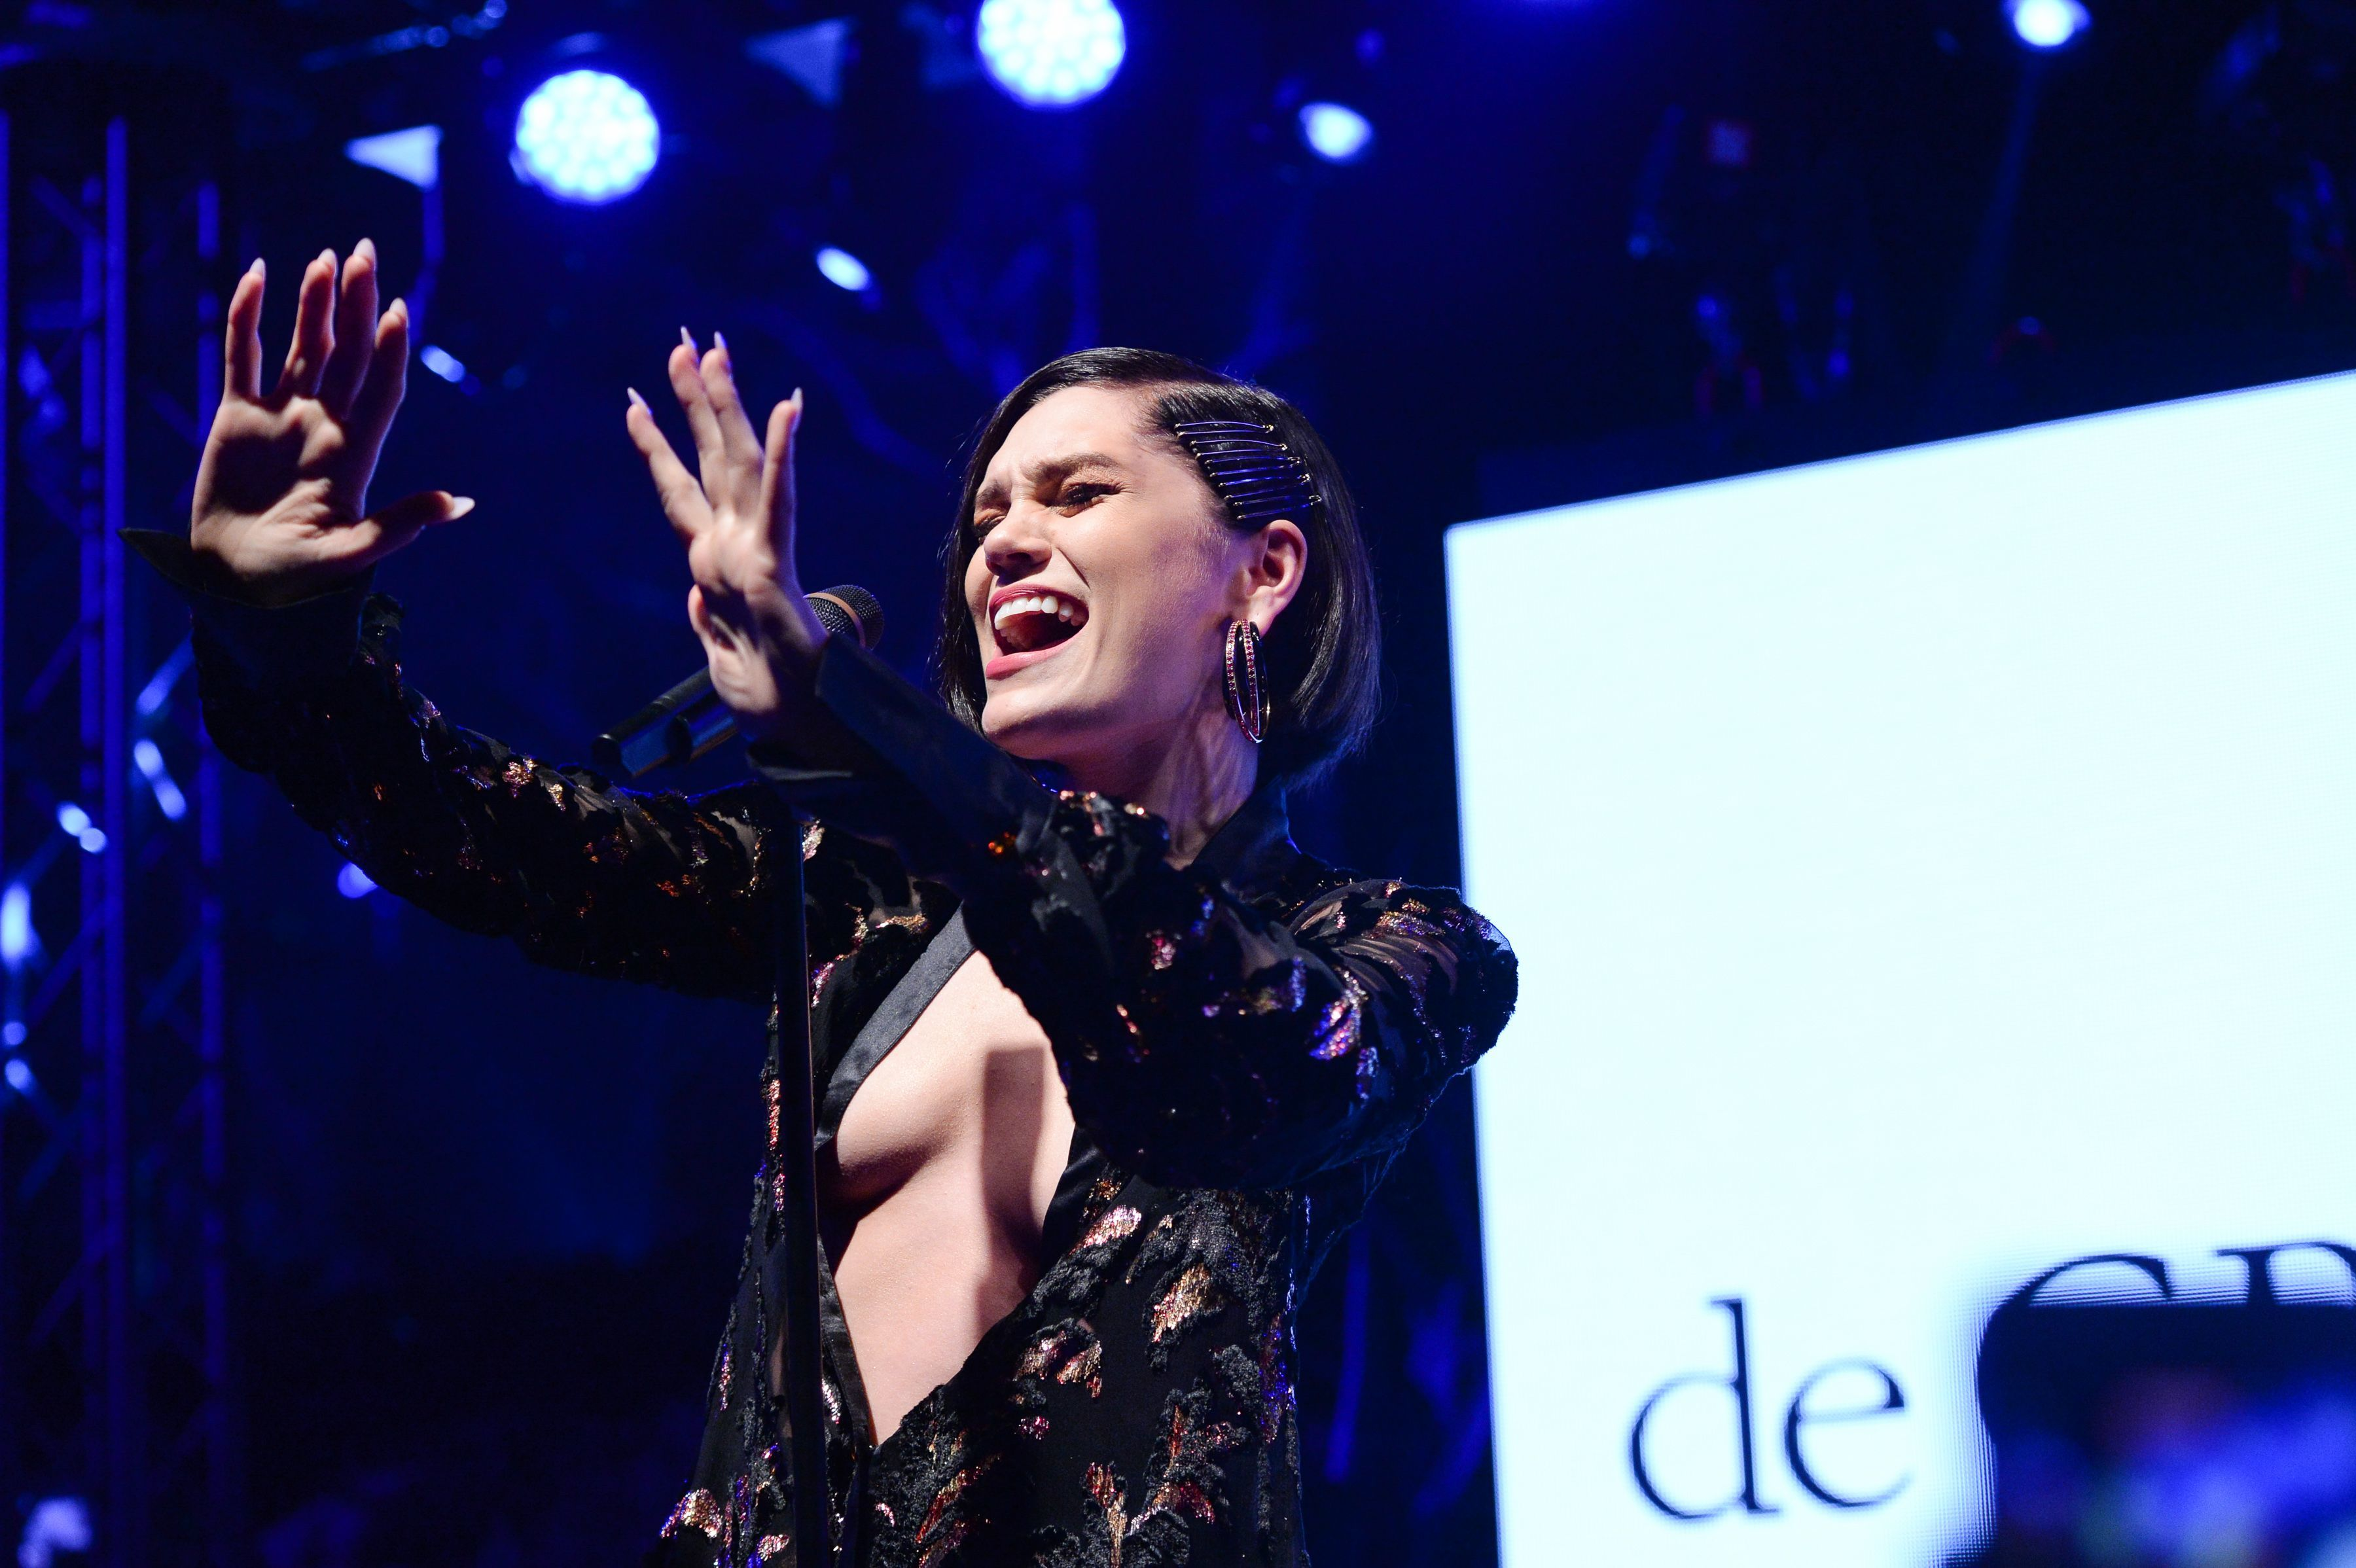 Jessie J performs during the De Grisogono Party during the 70th annual Cannes Film Festival on May 23, 2017.